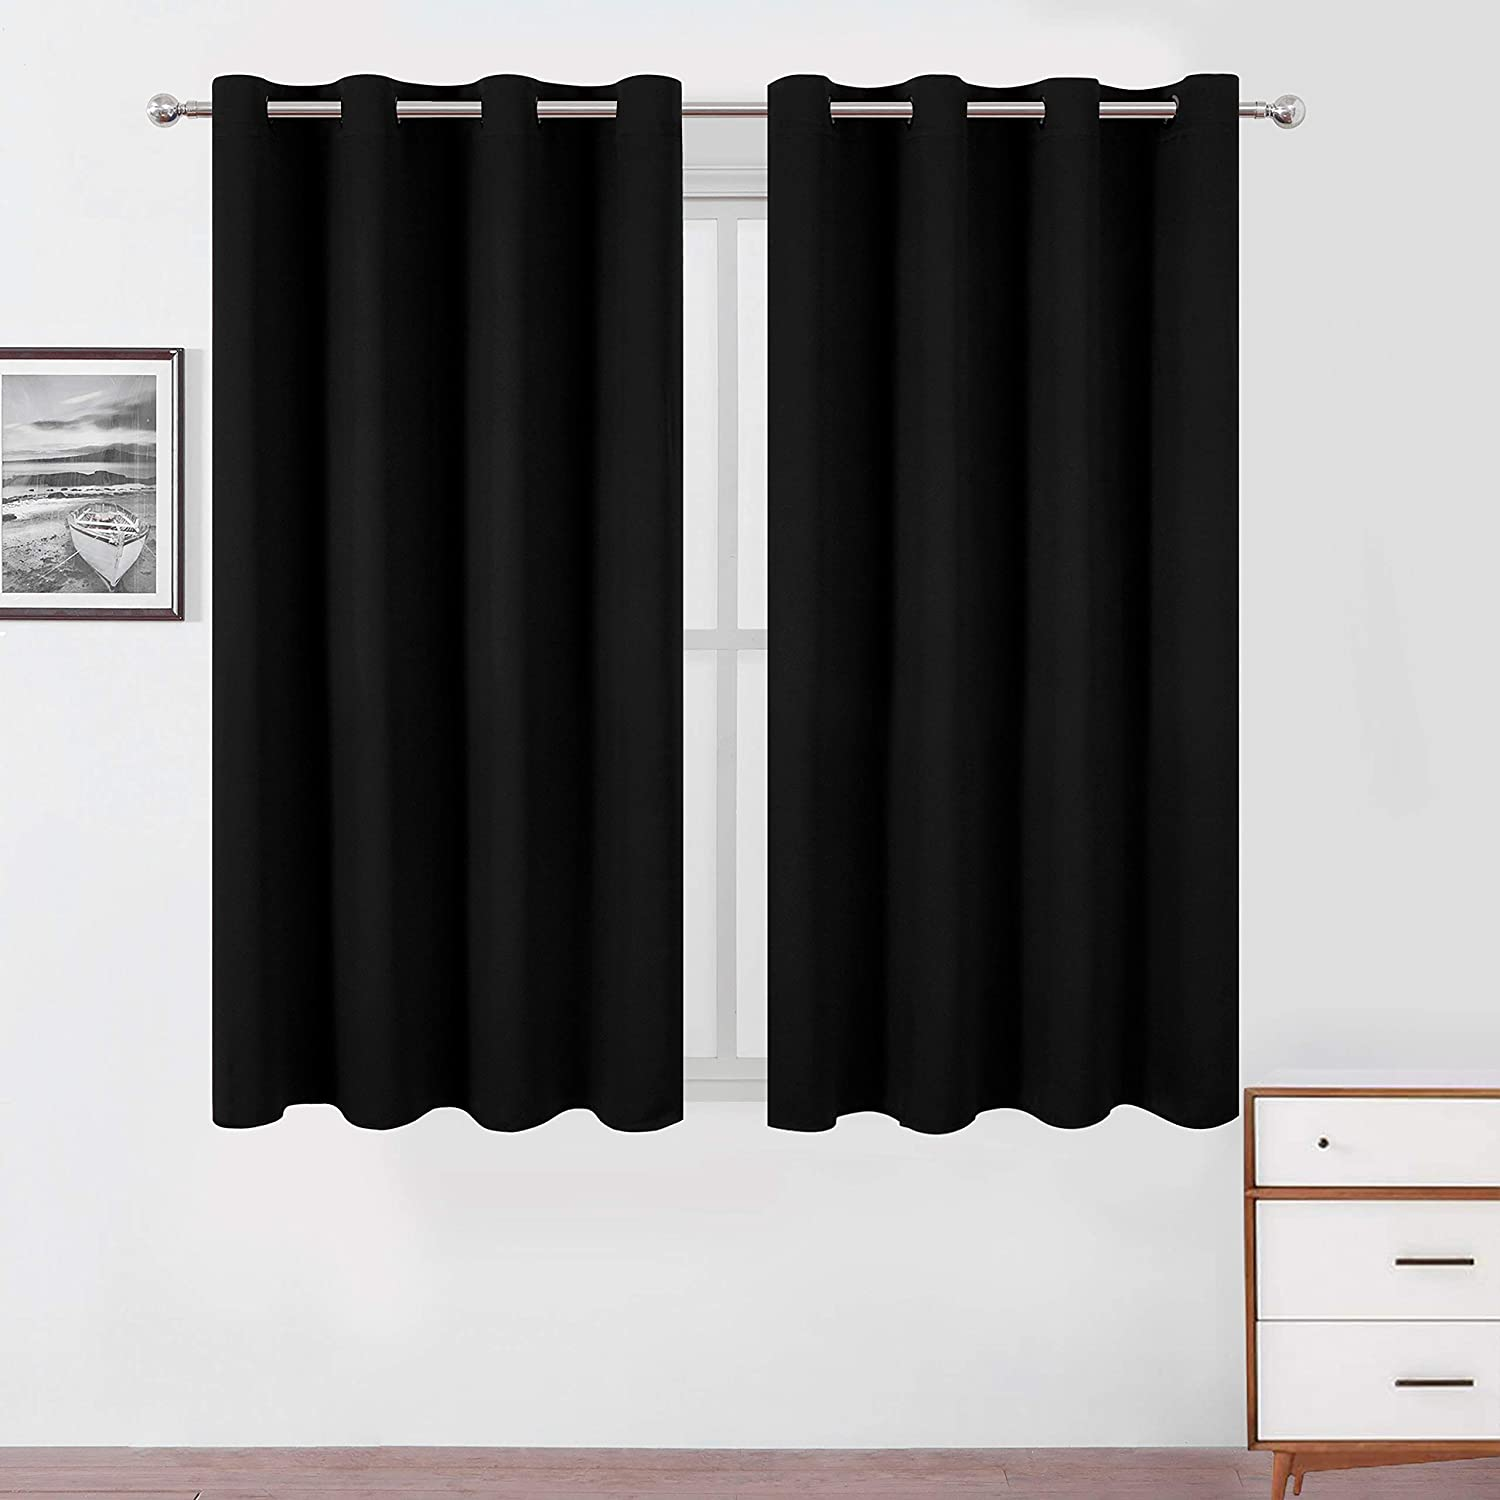 LEMOMO Black Blackout Curtains 52 x 63 Inch Length/Set of 2 Curtain Panels/Thermal Insulated Room Darkening Curtains for Bedroom and Living Room